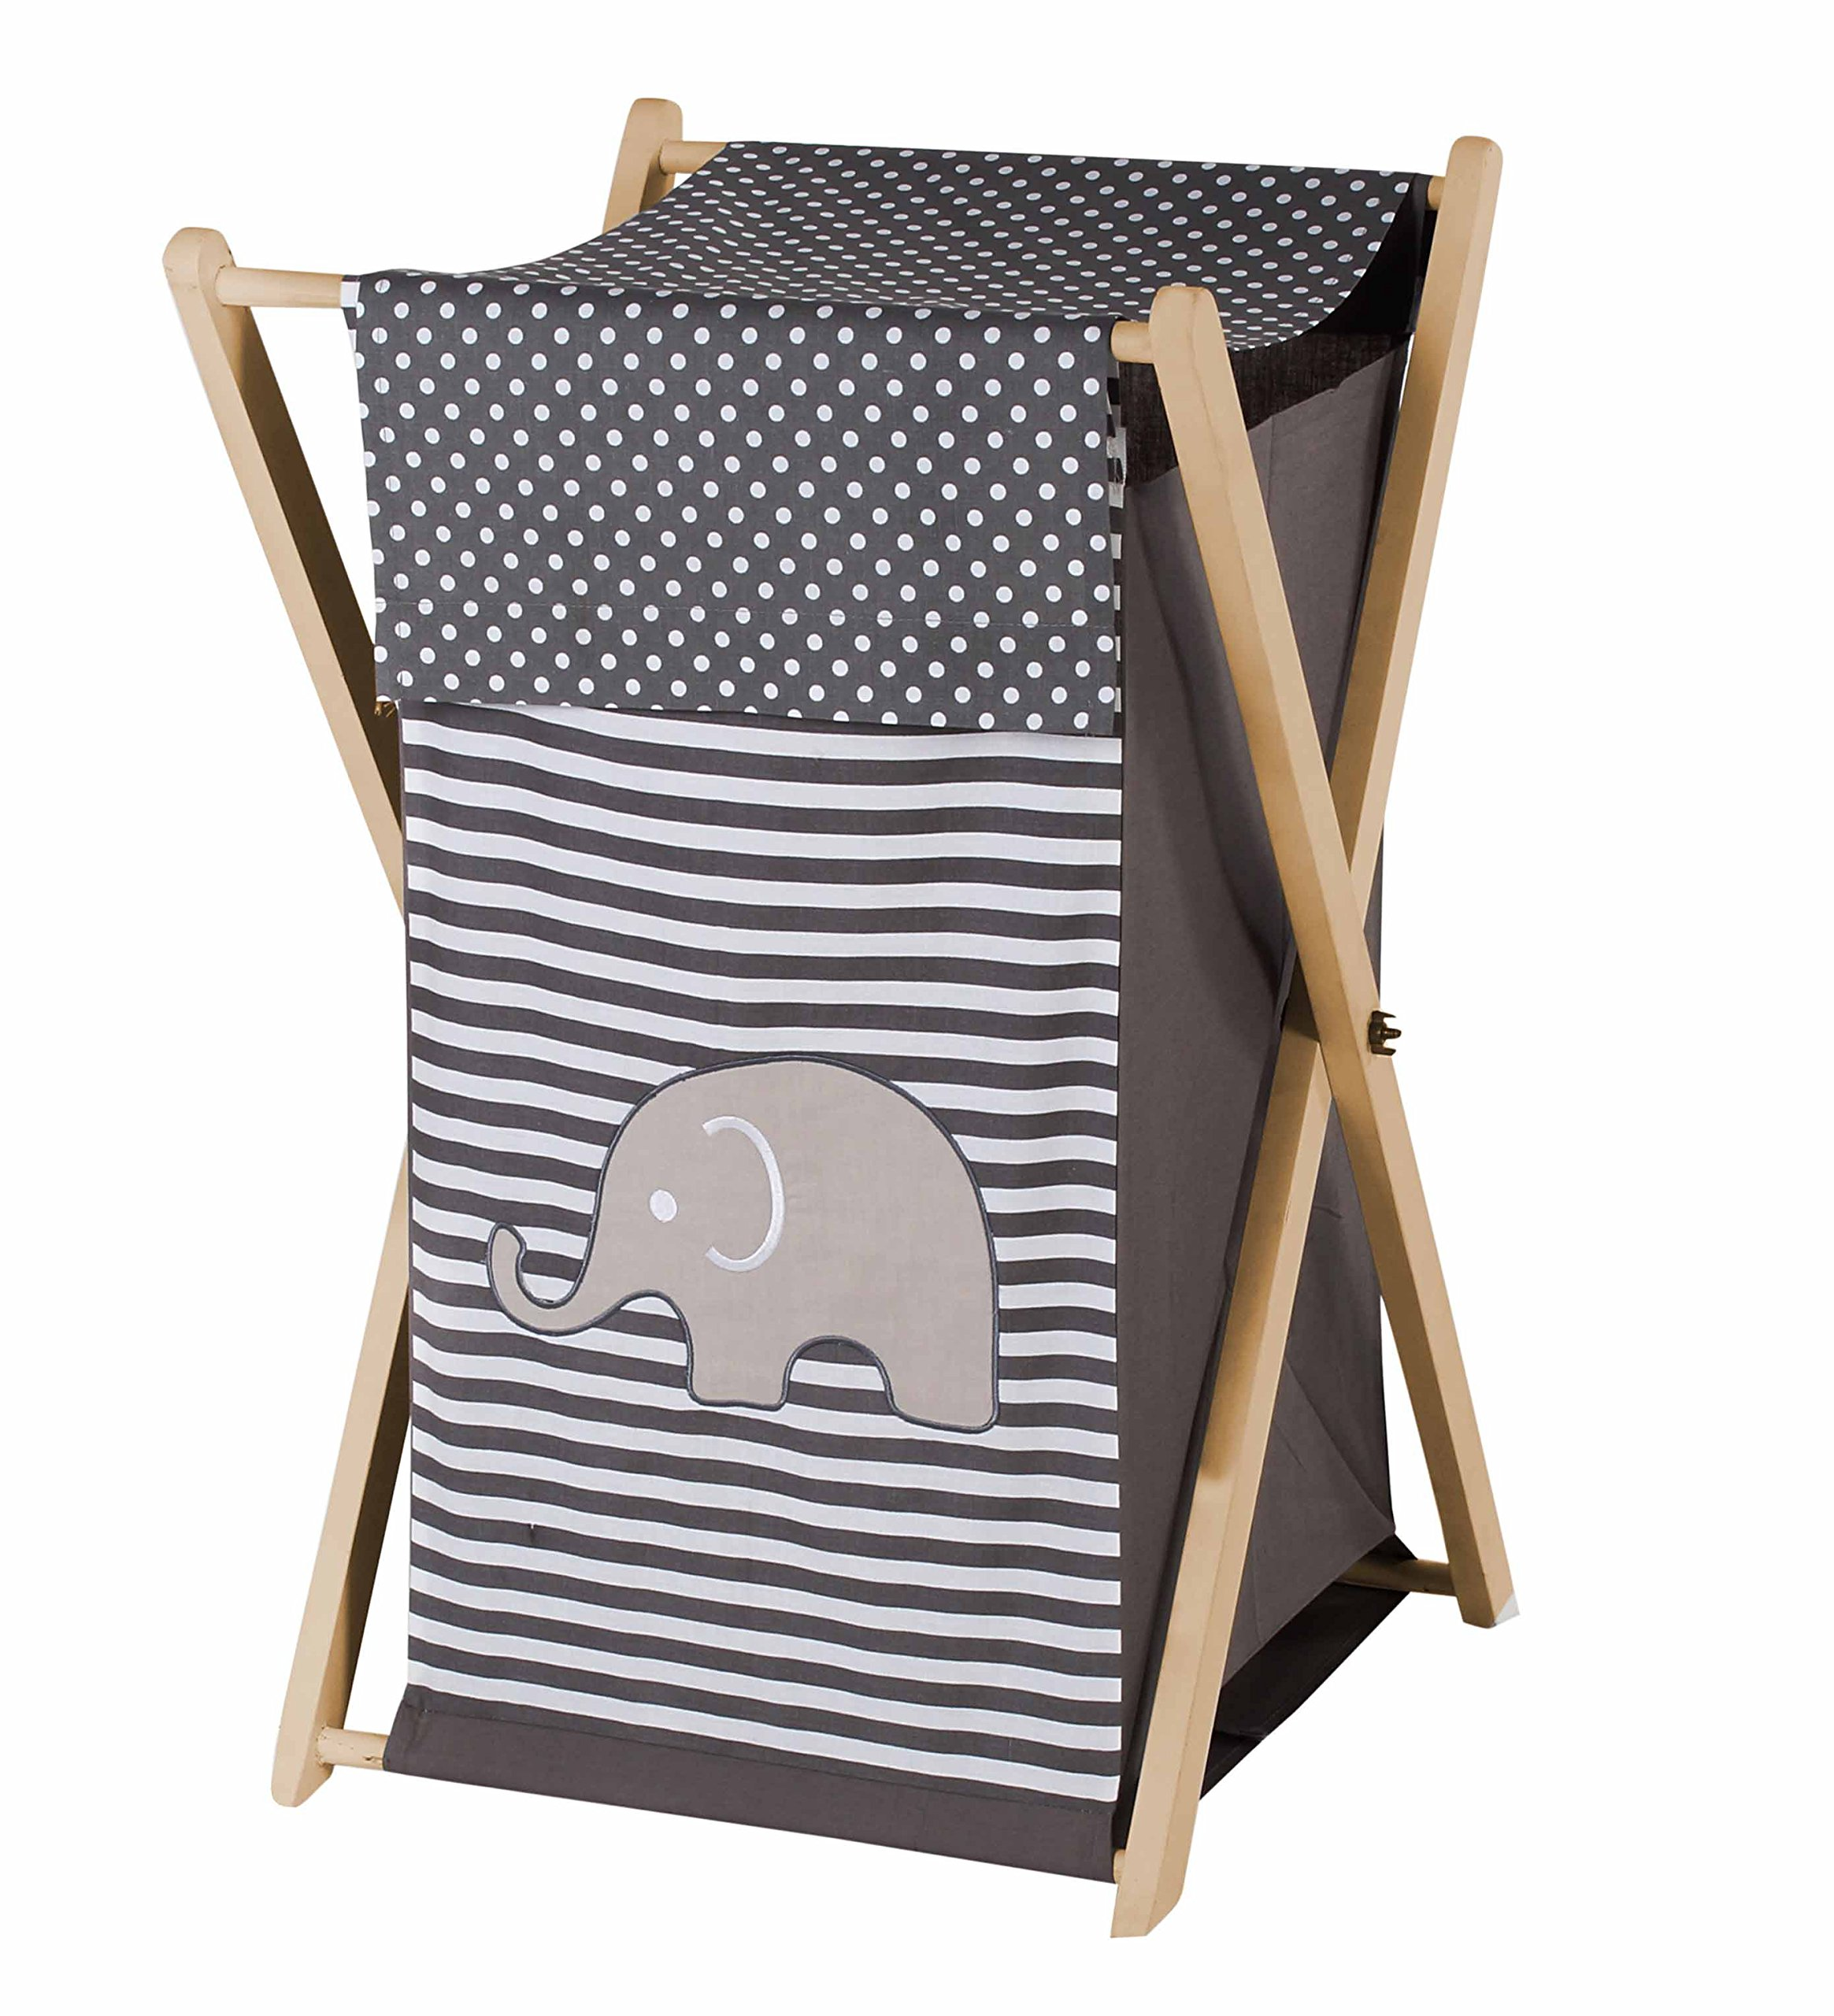 Bacati Elephants Unisex Hamper Cover with Natural Finish Wood Frame and Mesh Liner, Grey by Bacati